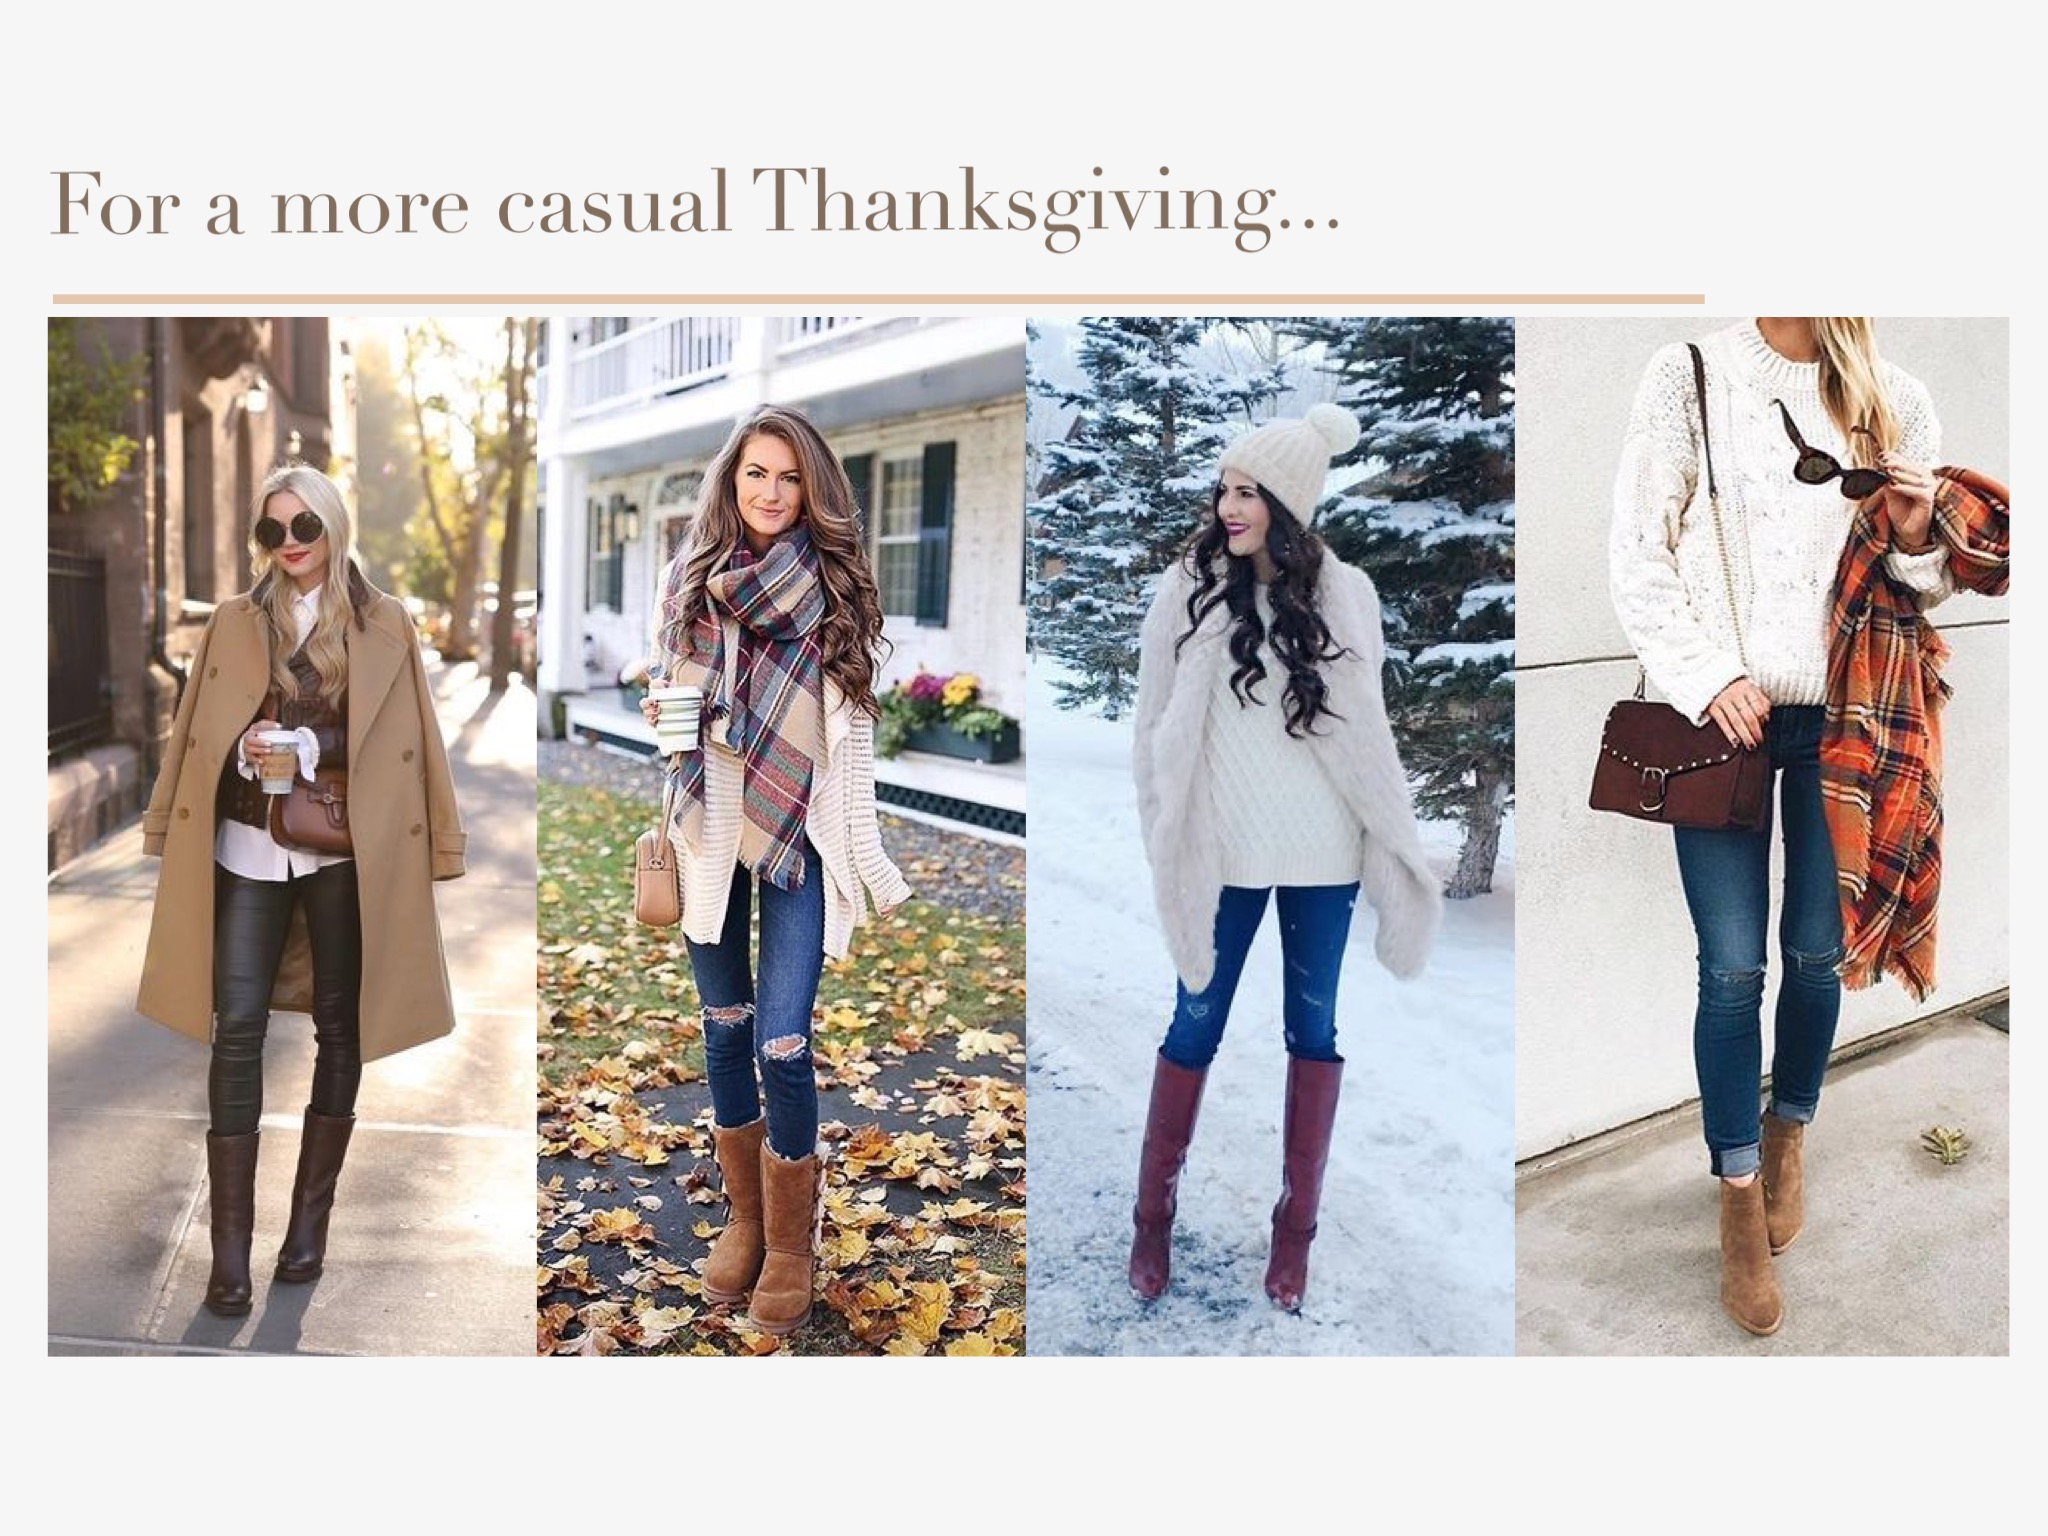 For a more casual Thanksgiving